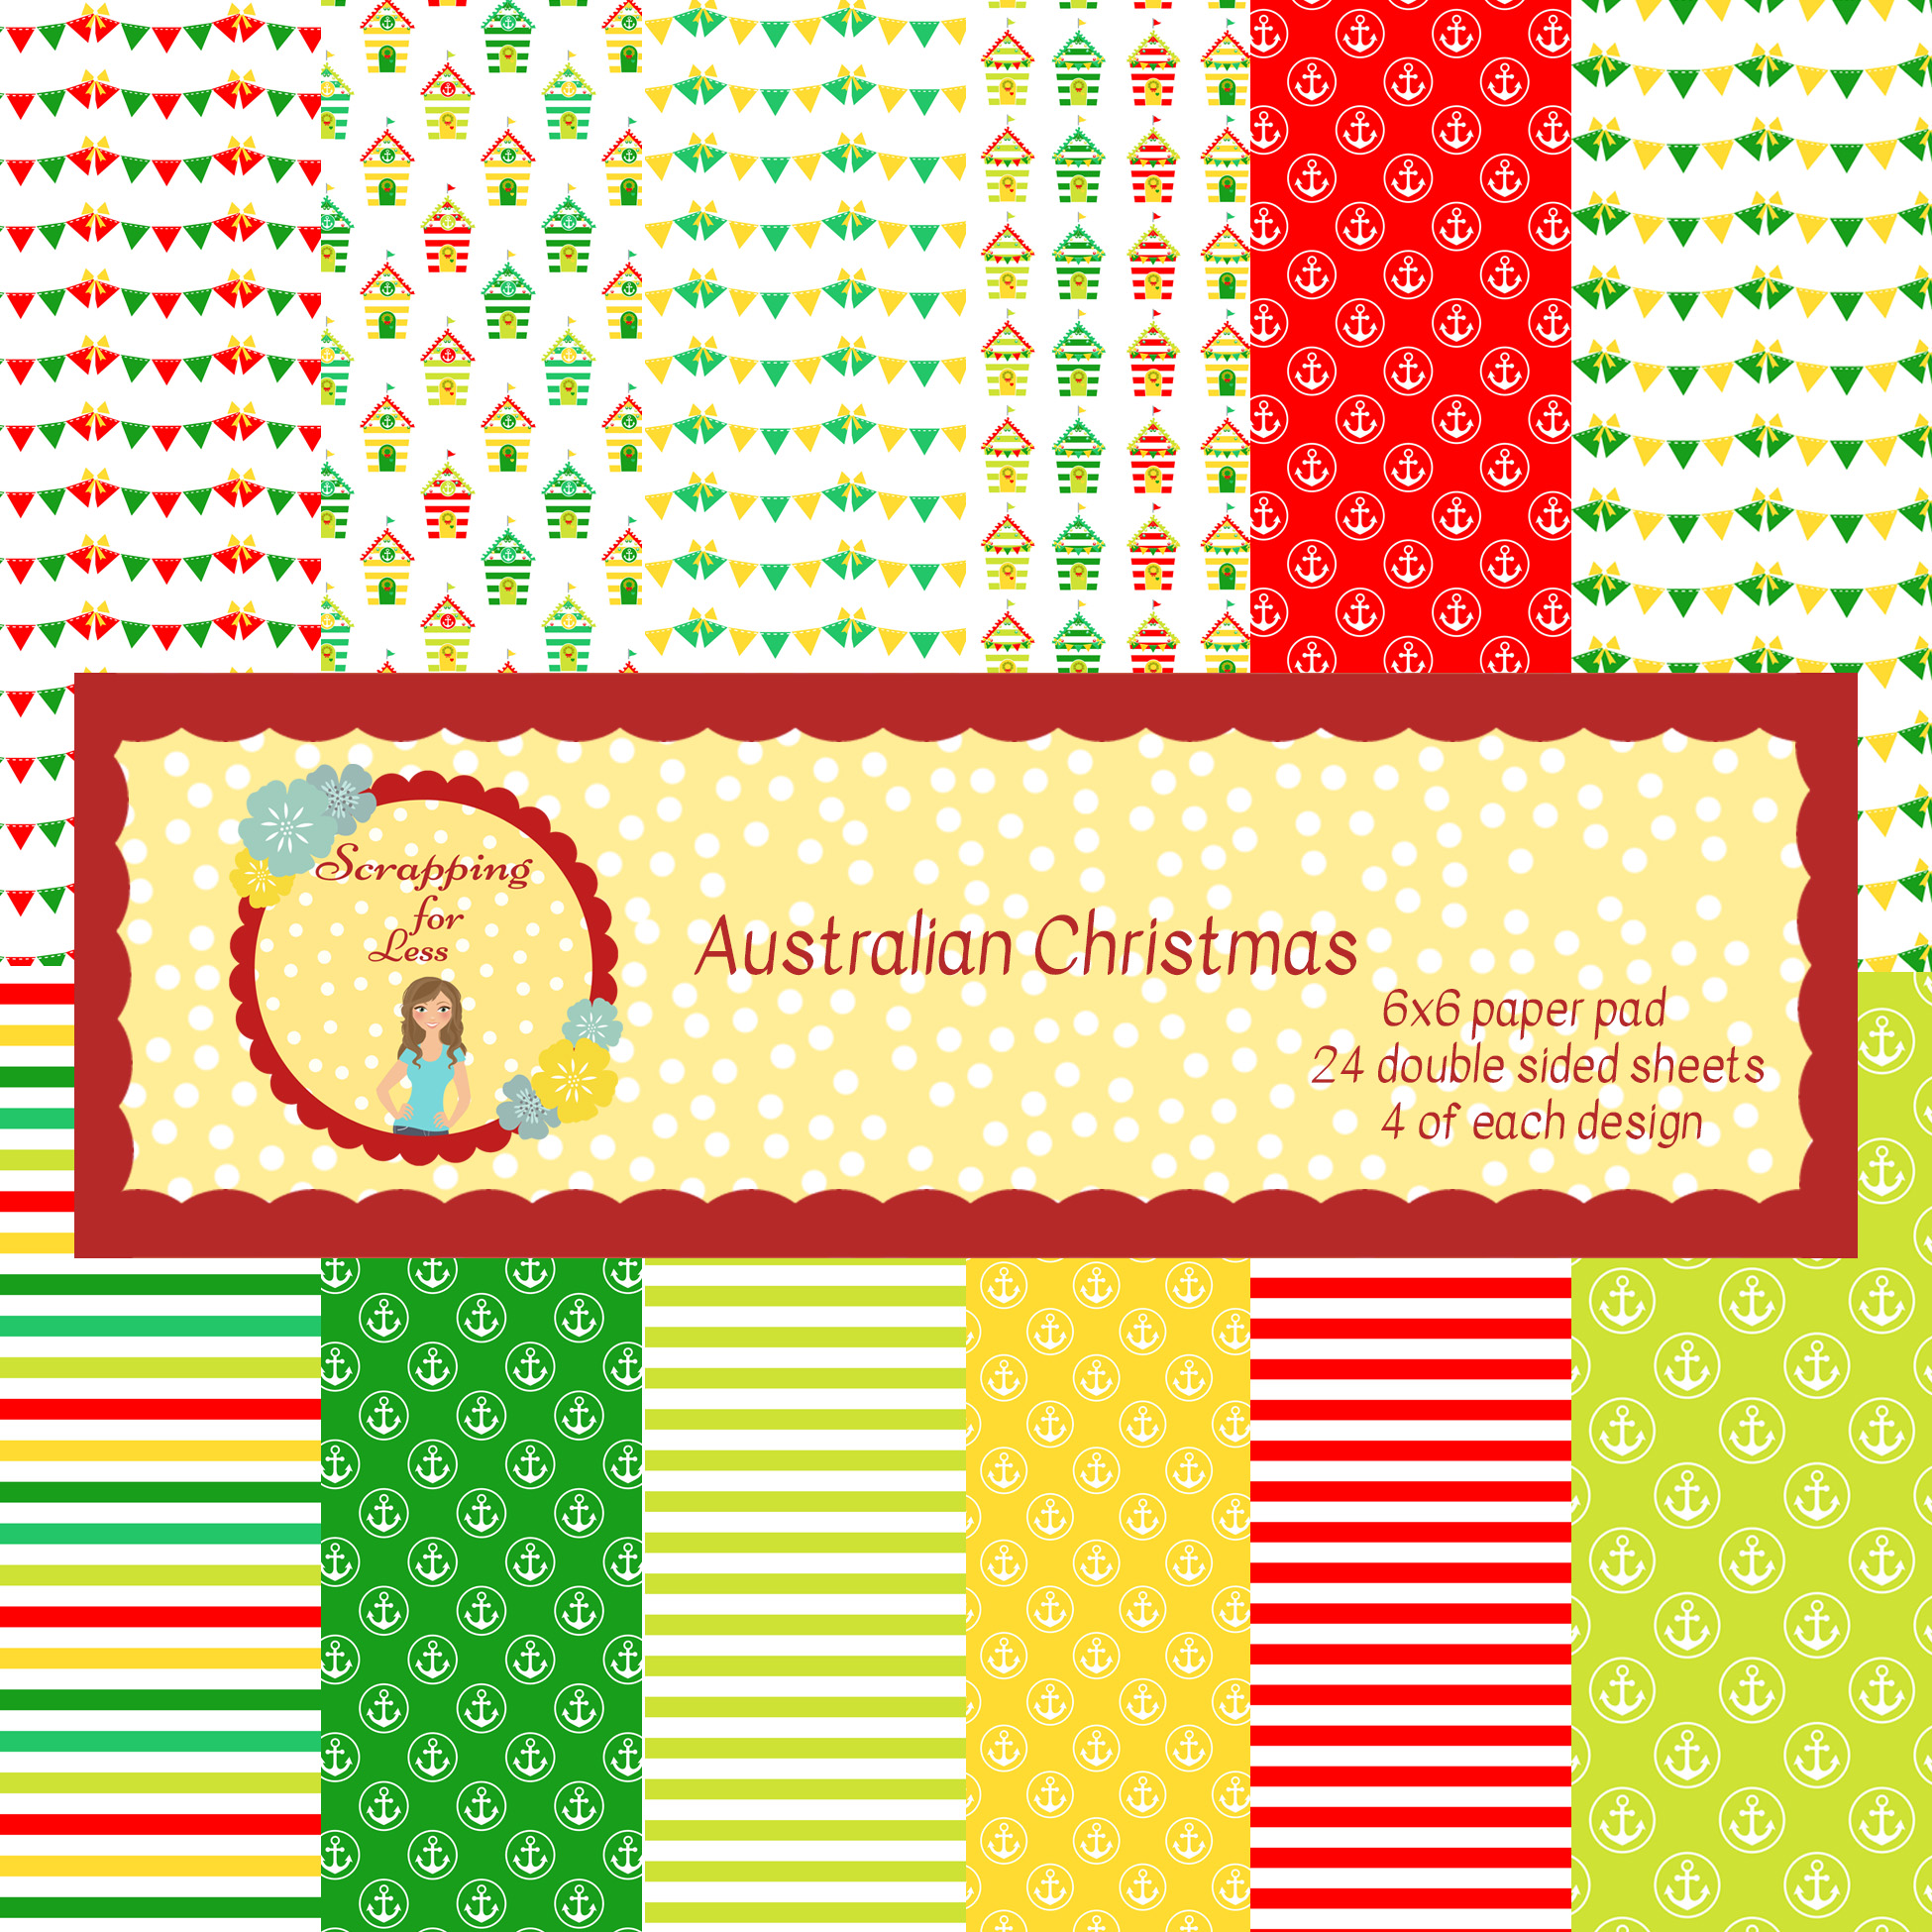 Scrapping for Less Australian Christmas 6x6 Paper Pad